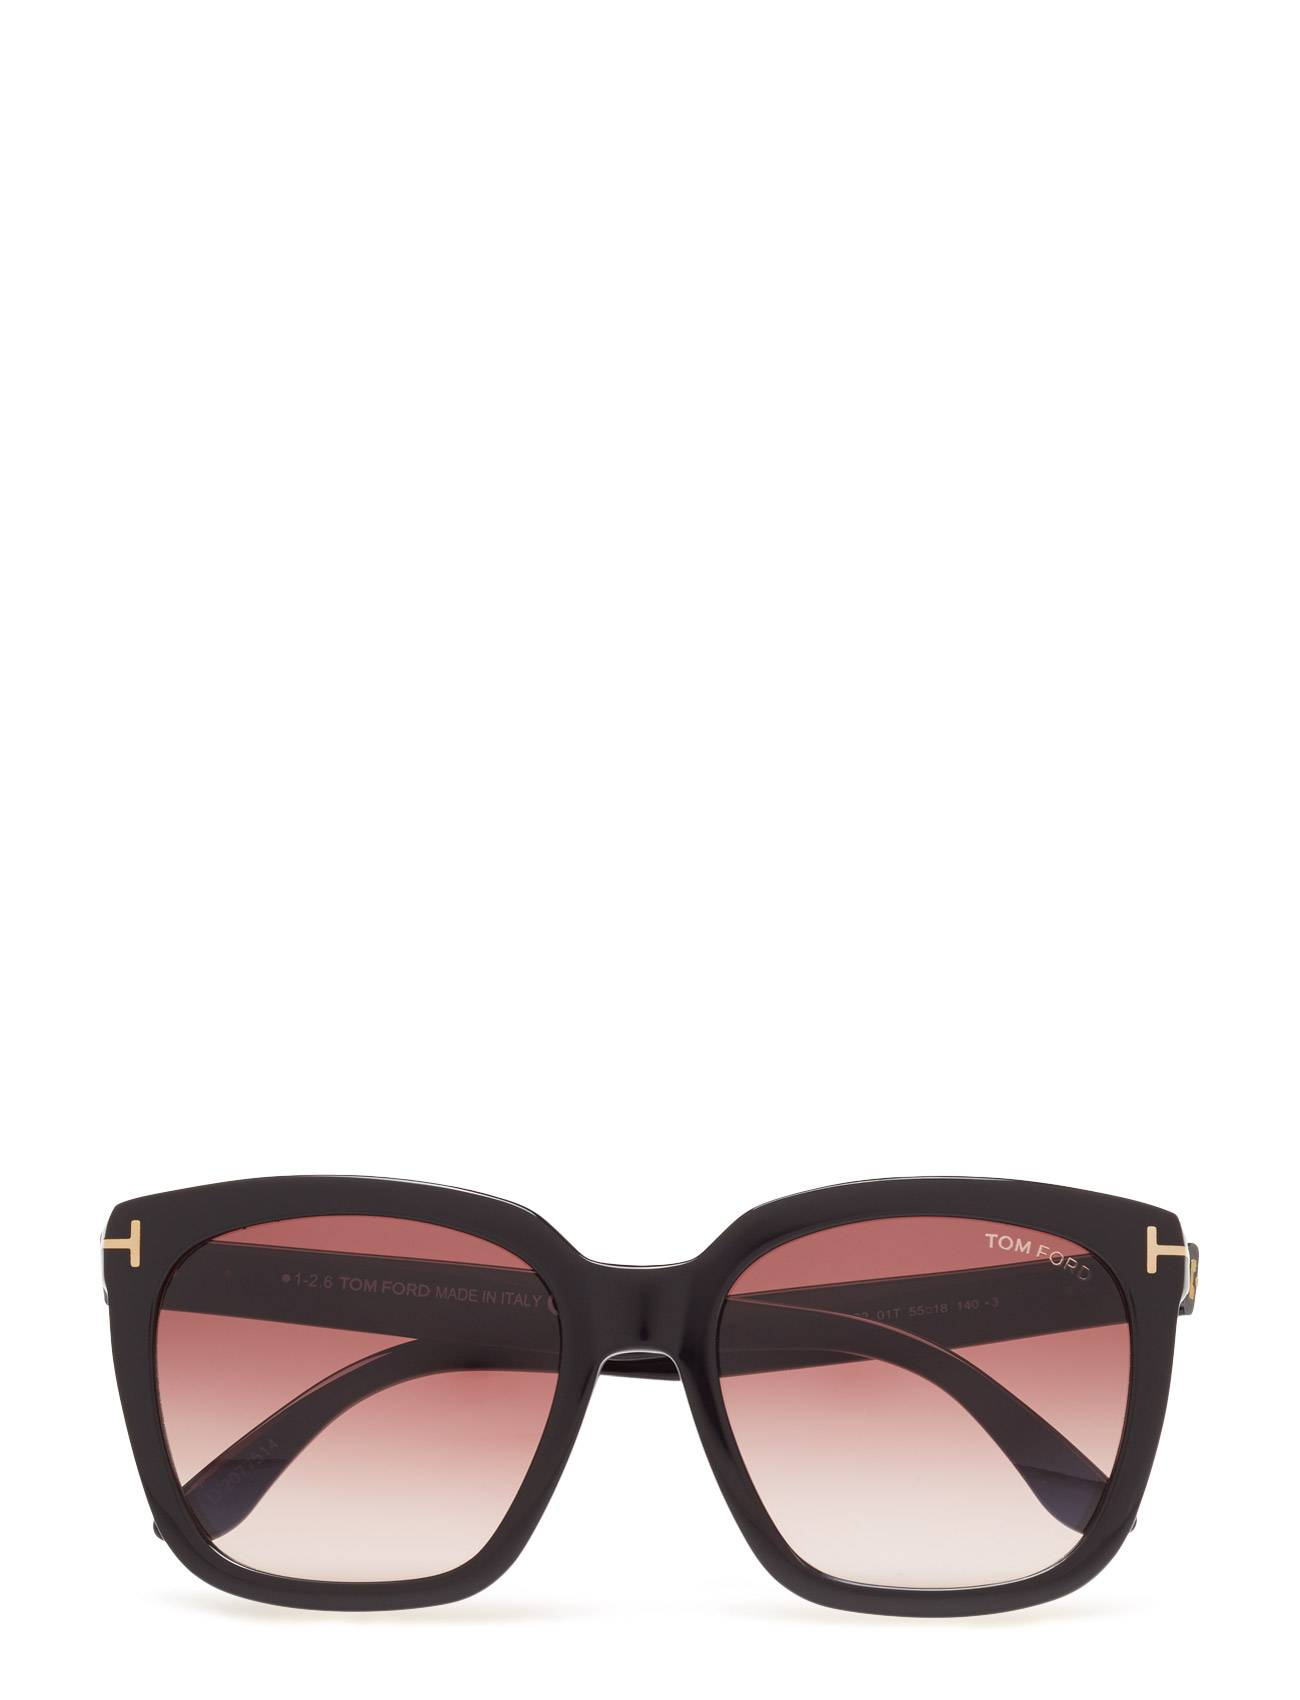 Tom Ford Sunglasses Tom Ford Amarra